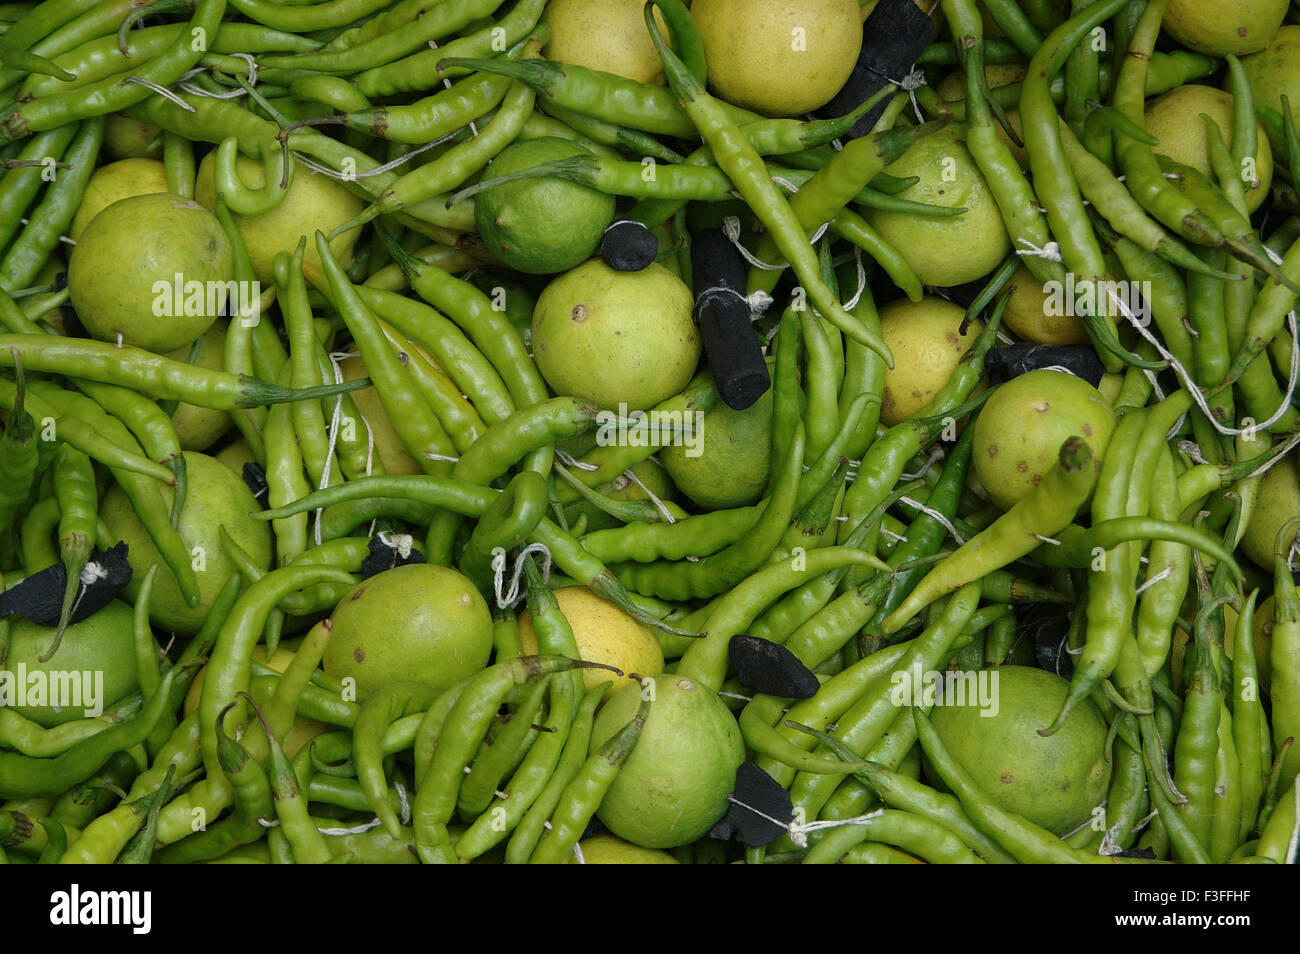 Belief ;Green Chili ; lemon and charcoal tied together to protect from evil sight ; India - Stock Image